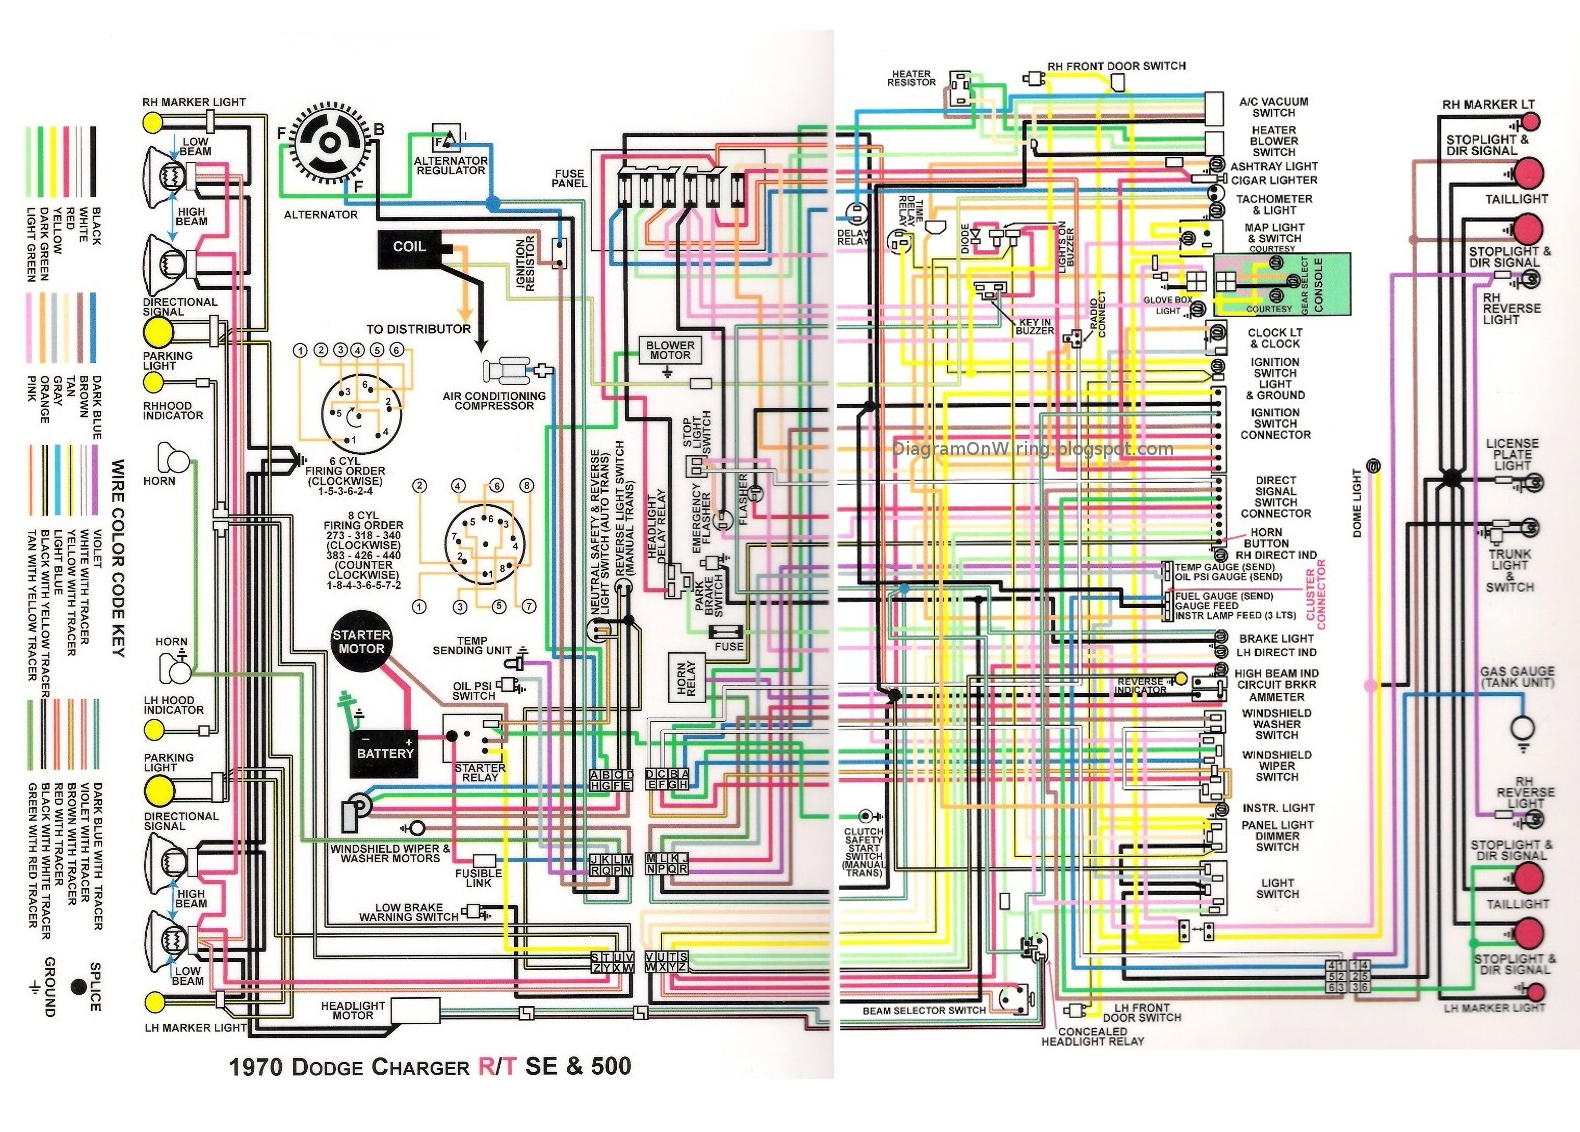 Dodge Charger RT SE and 500 1970 Complete Wiring Diagram | All about Wiring Diagrams